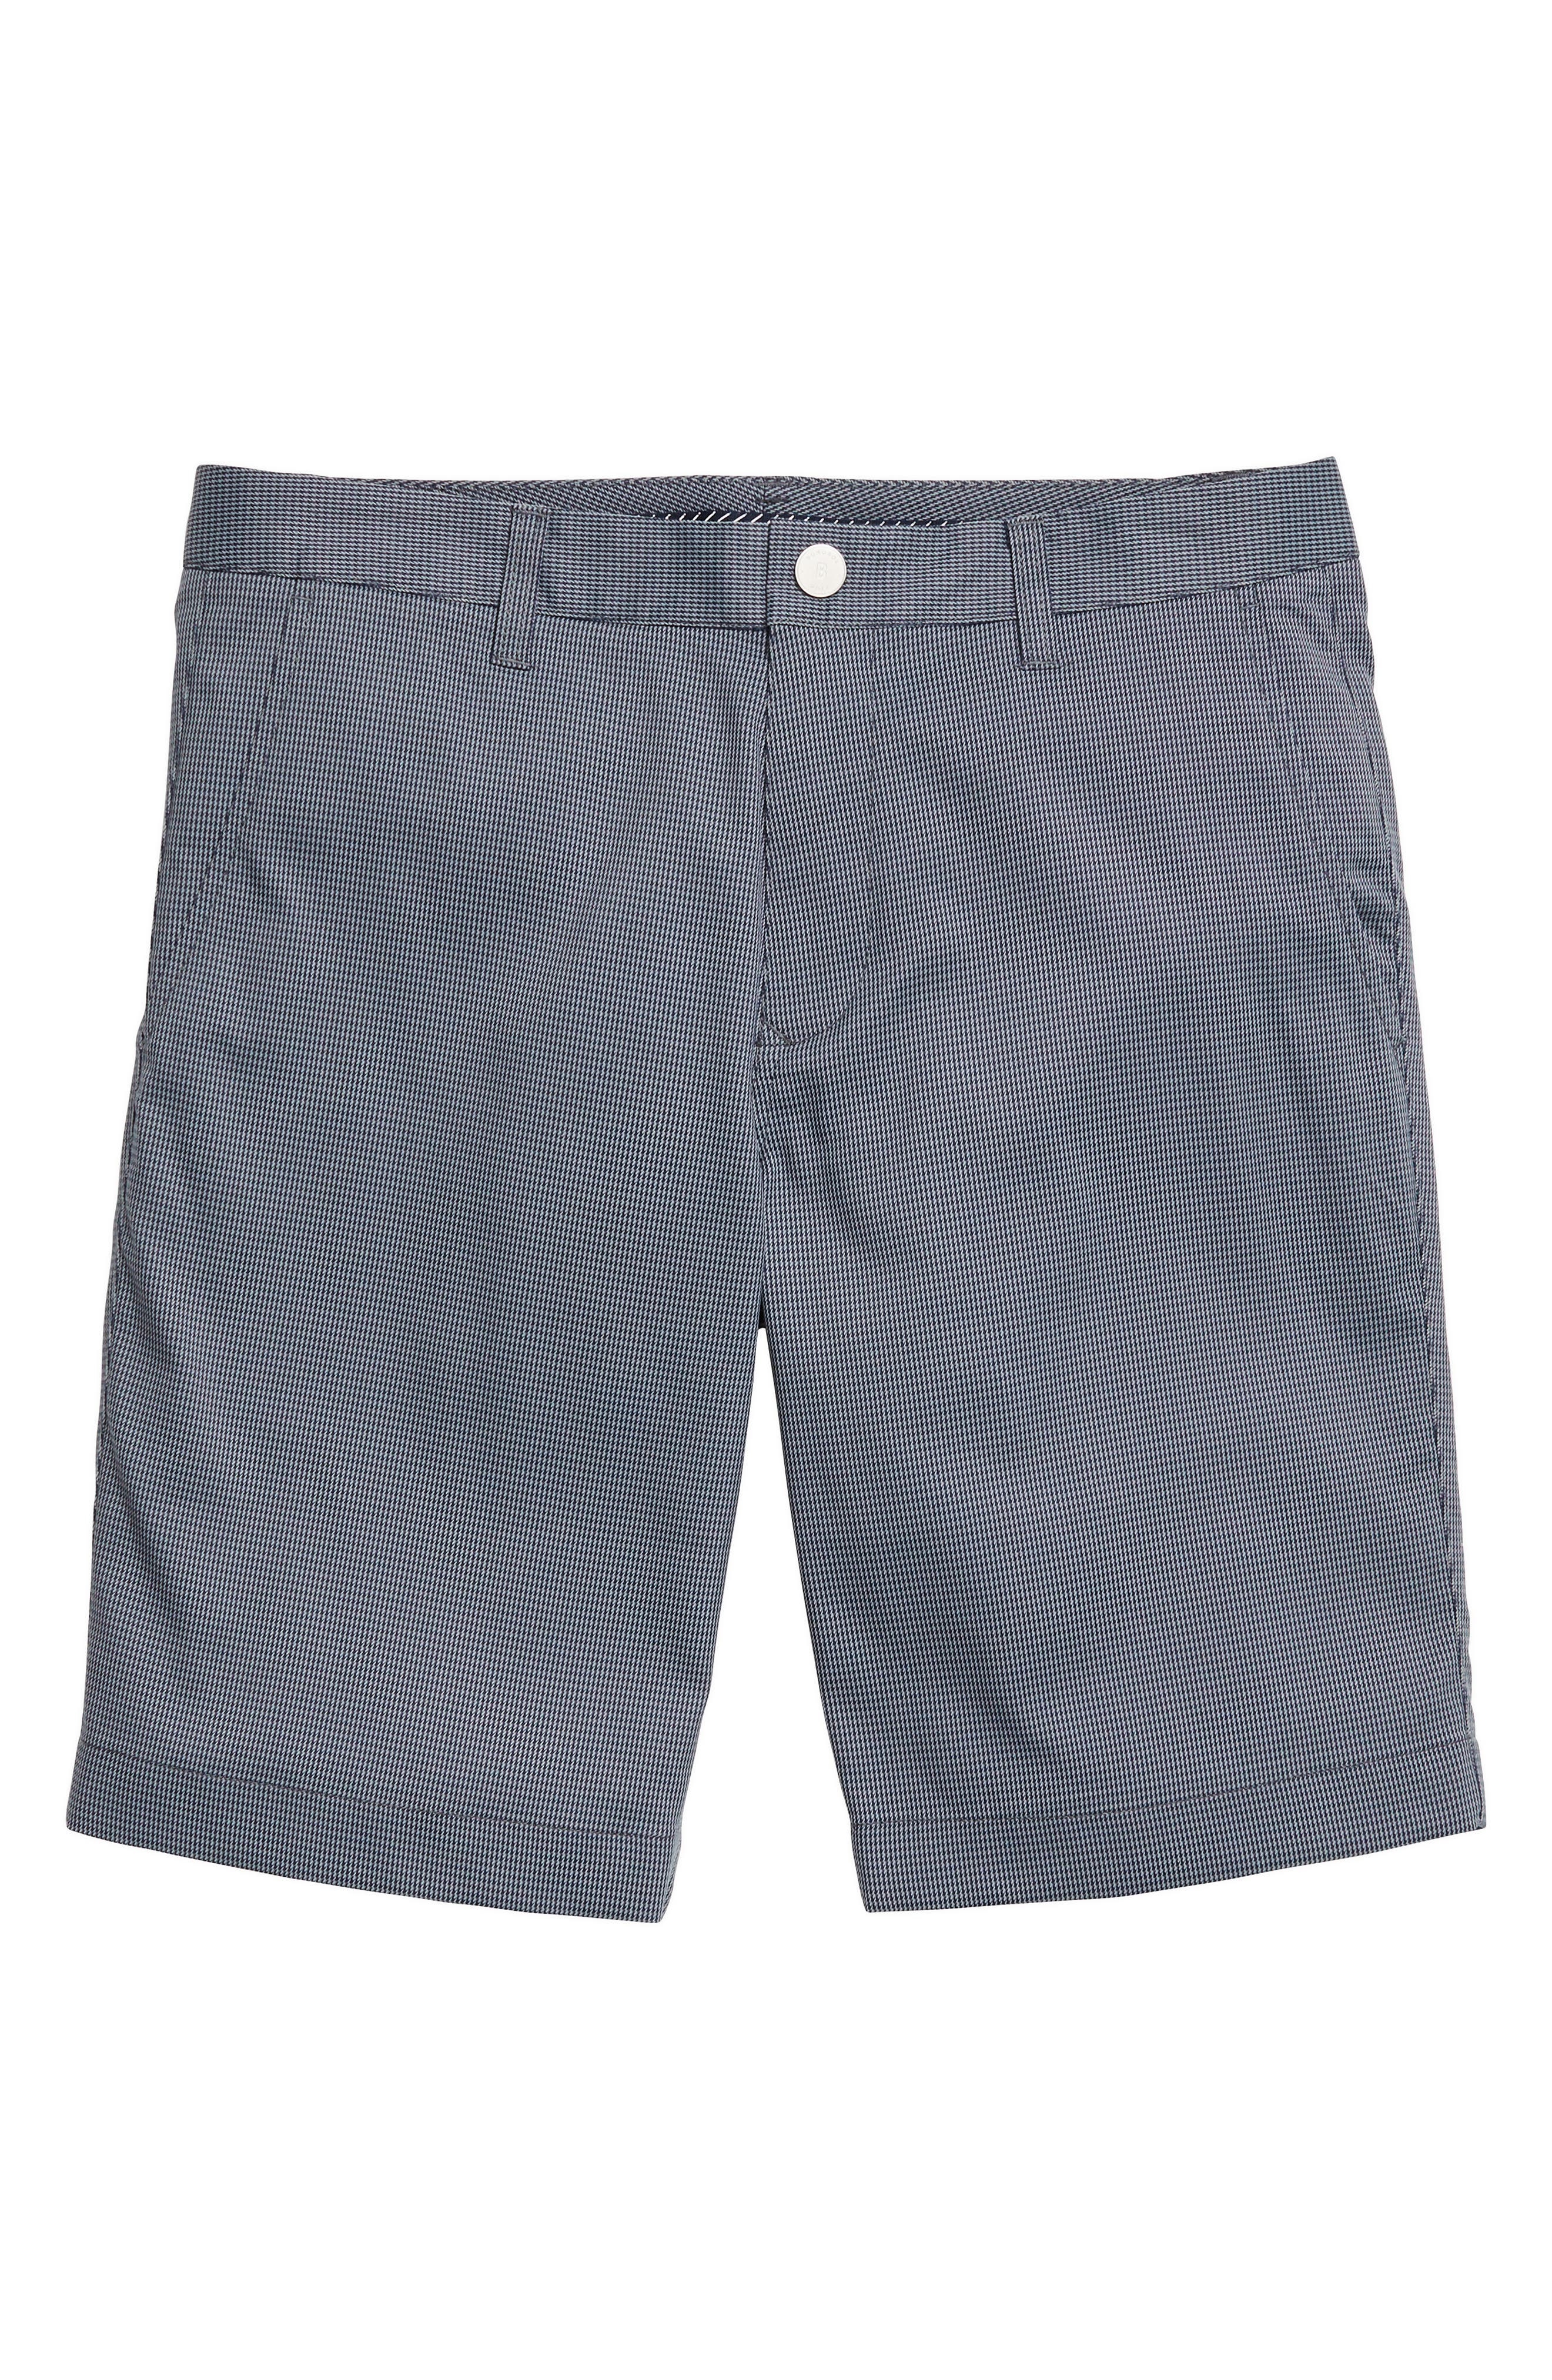 Highland Golf Shorts,                             Alternate thumbnail 3, color,                             Grey Minicheck